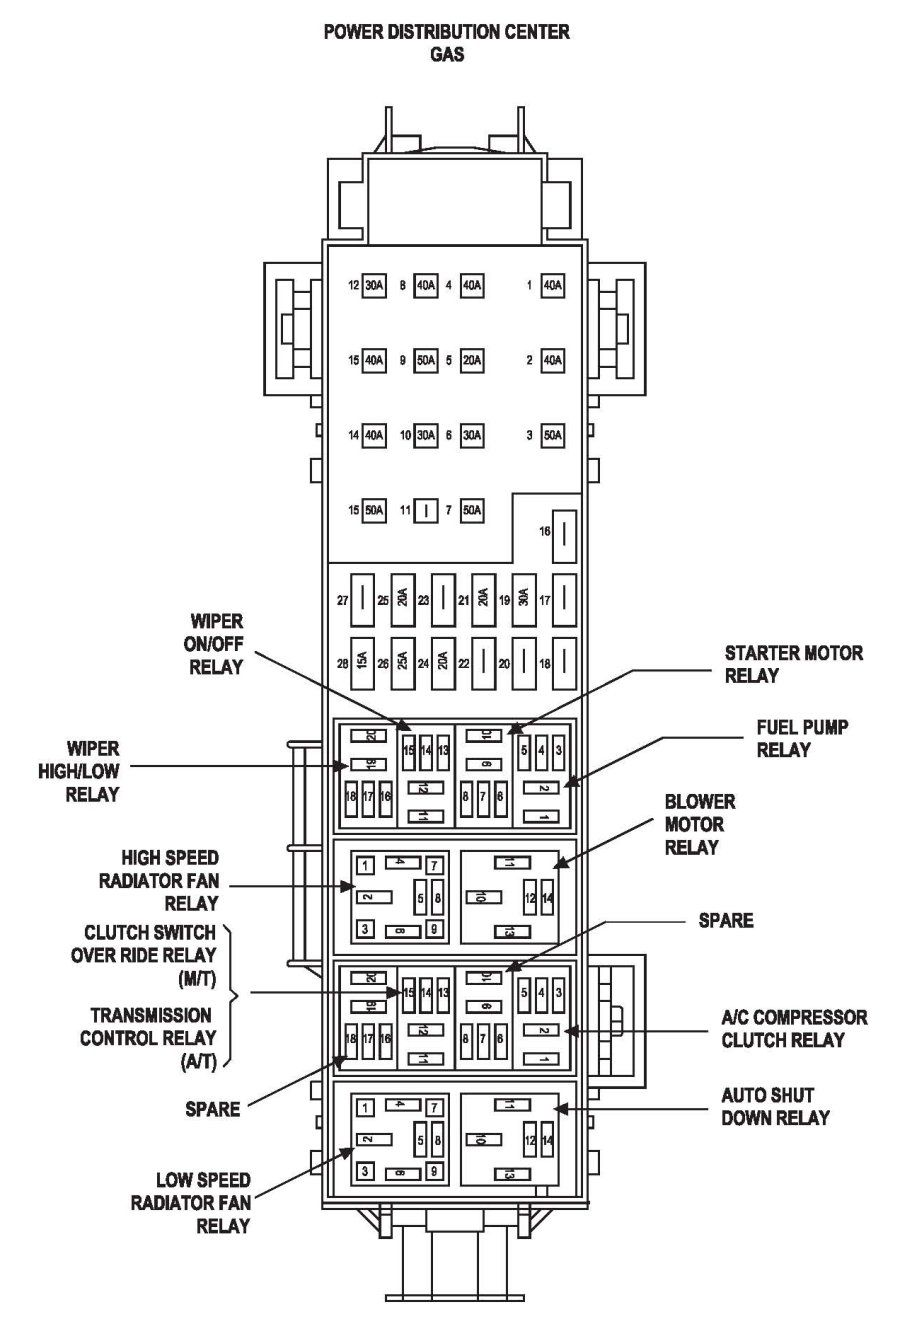 Jeep Liberty Fuse Box Diagram  image details | Jeep